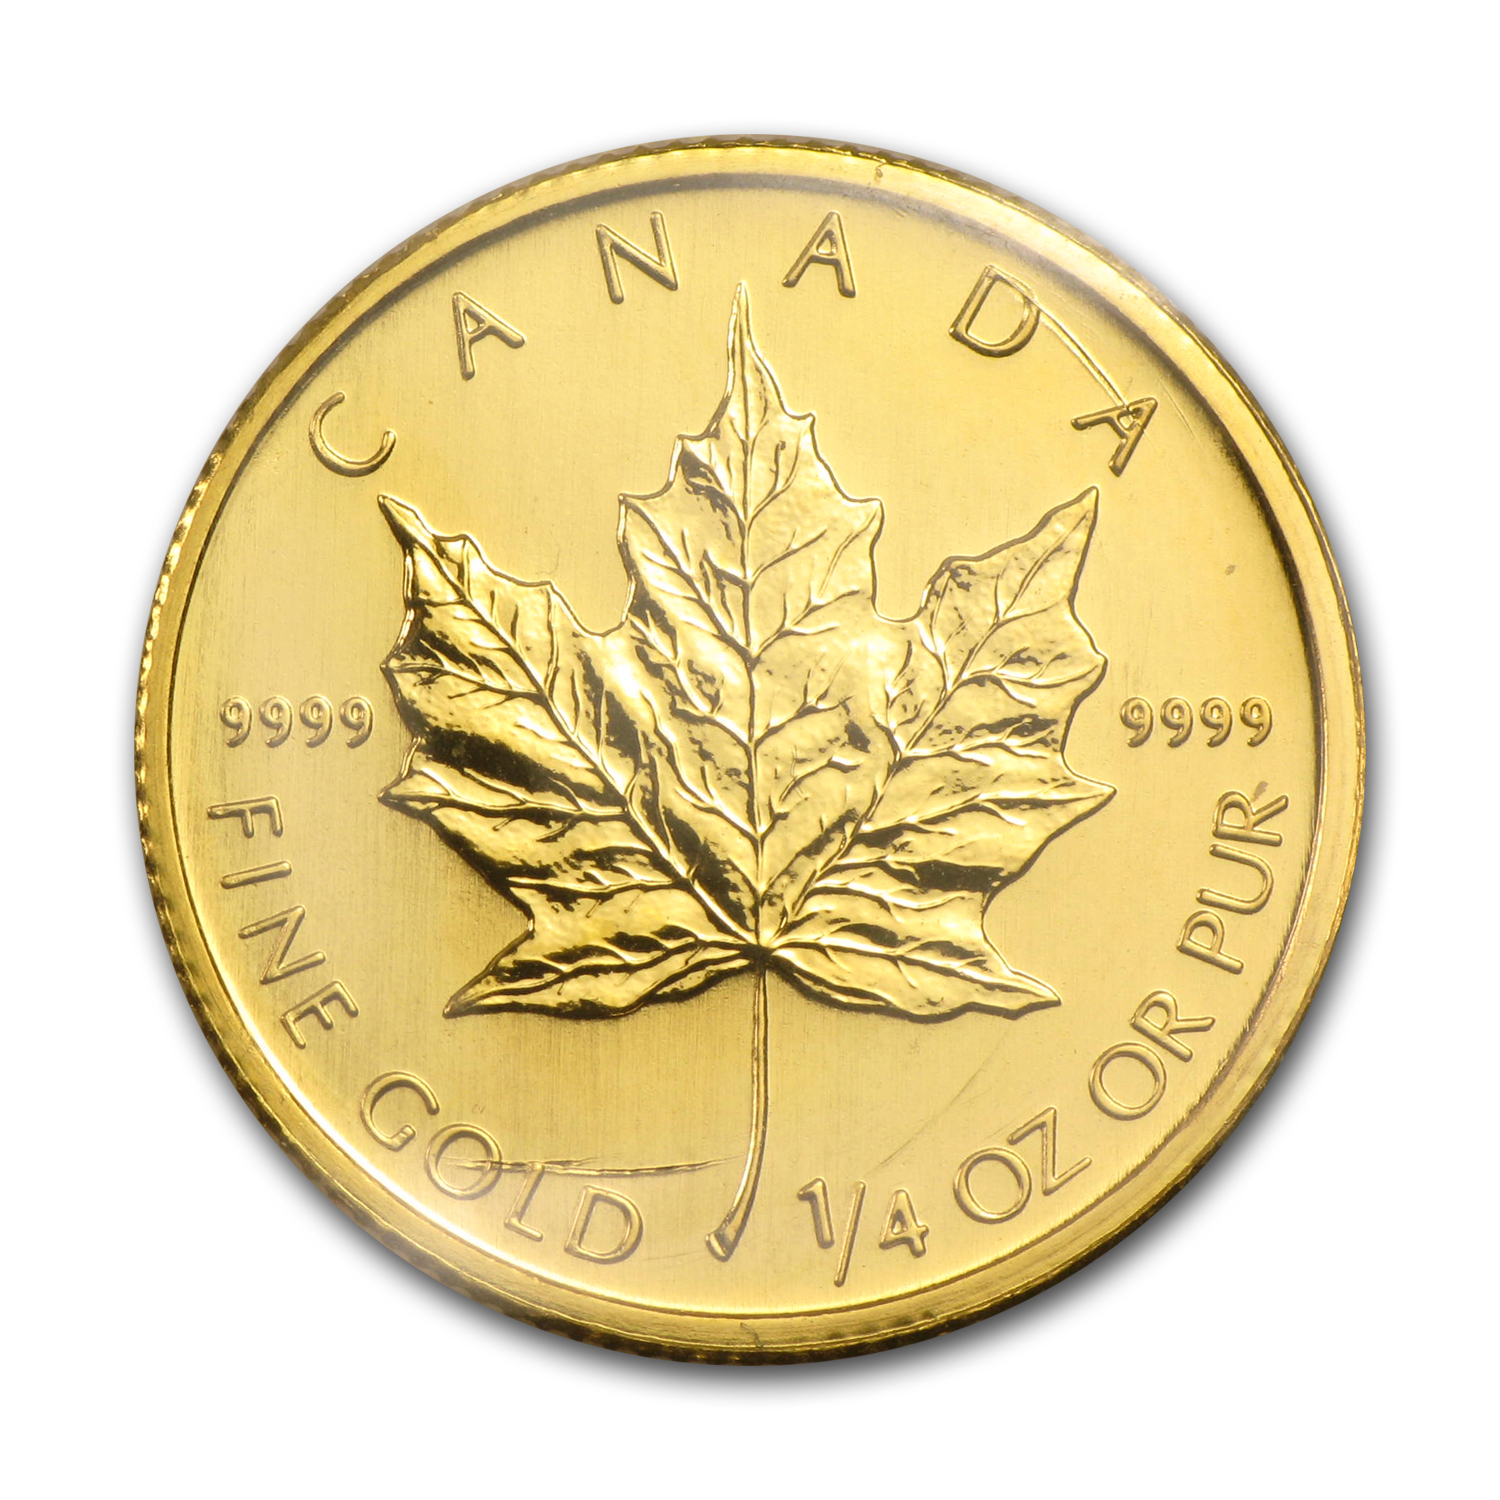 2009 Canada 1/4 oz Gold Maple Leaf BU